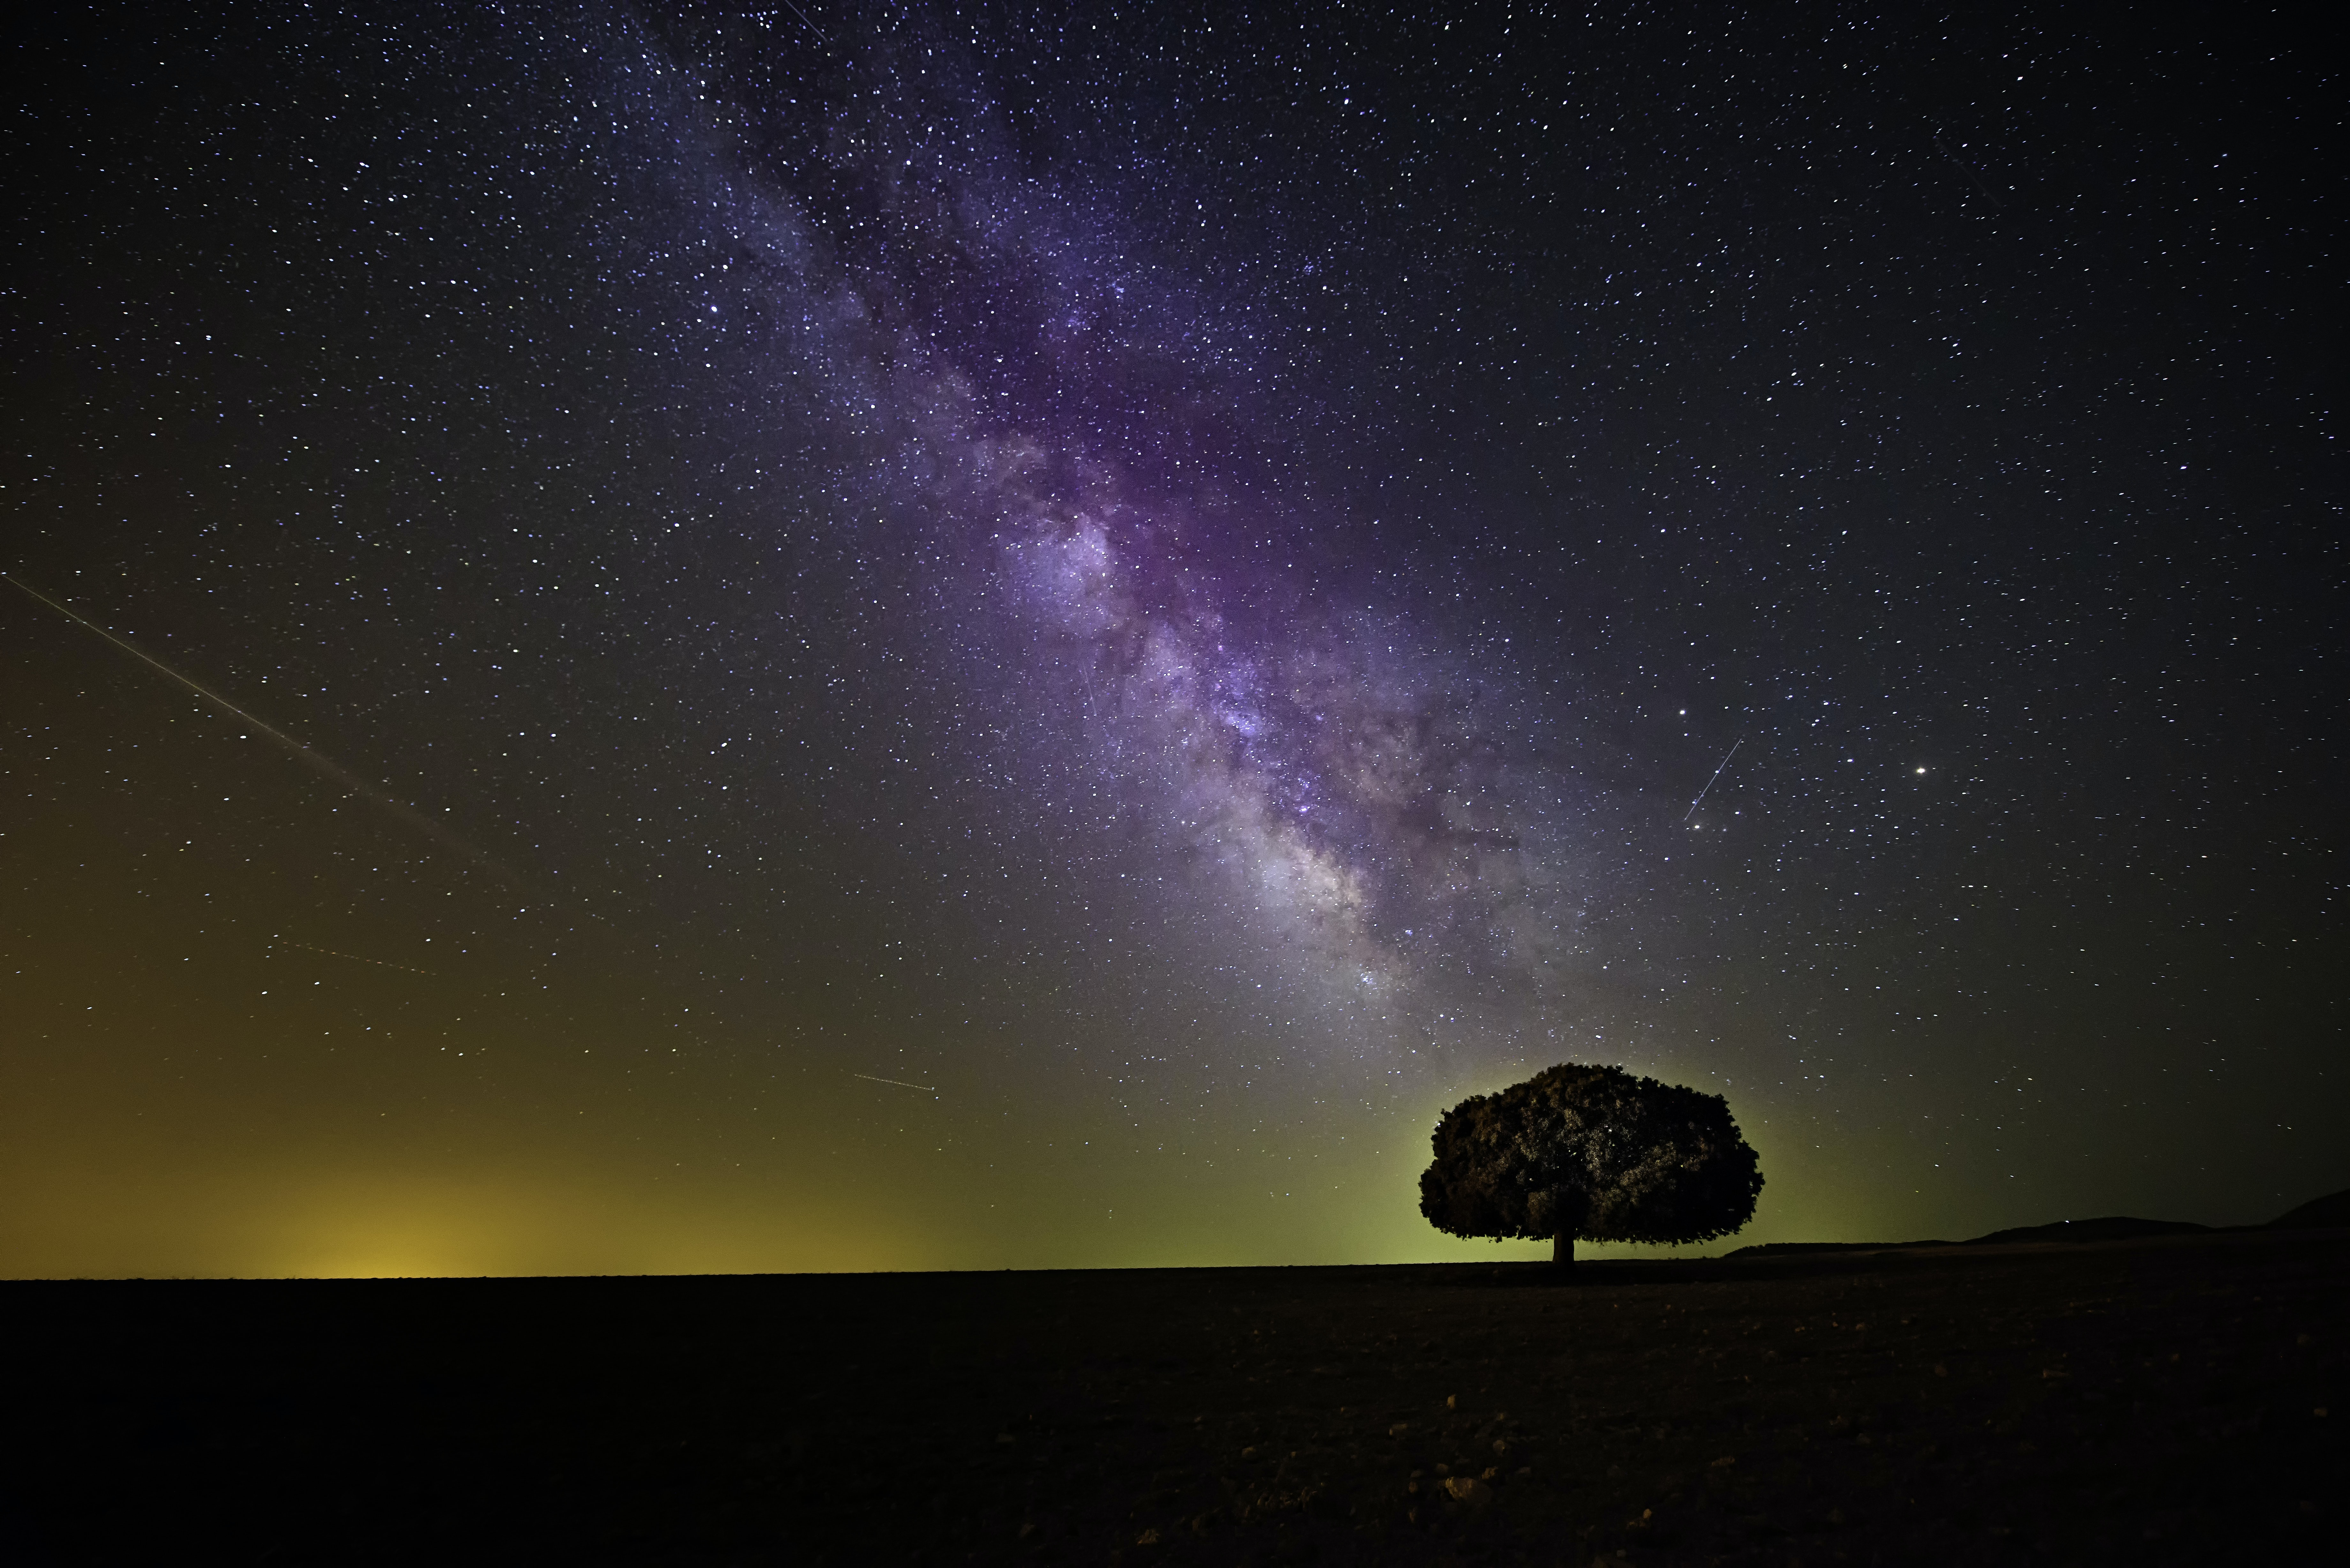 tree during night time with purple sky